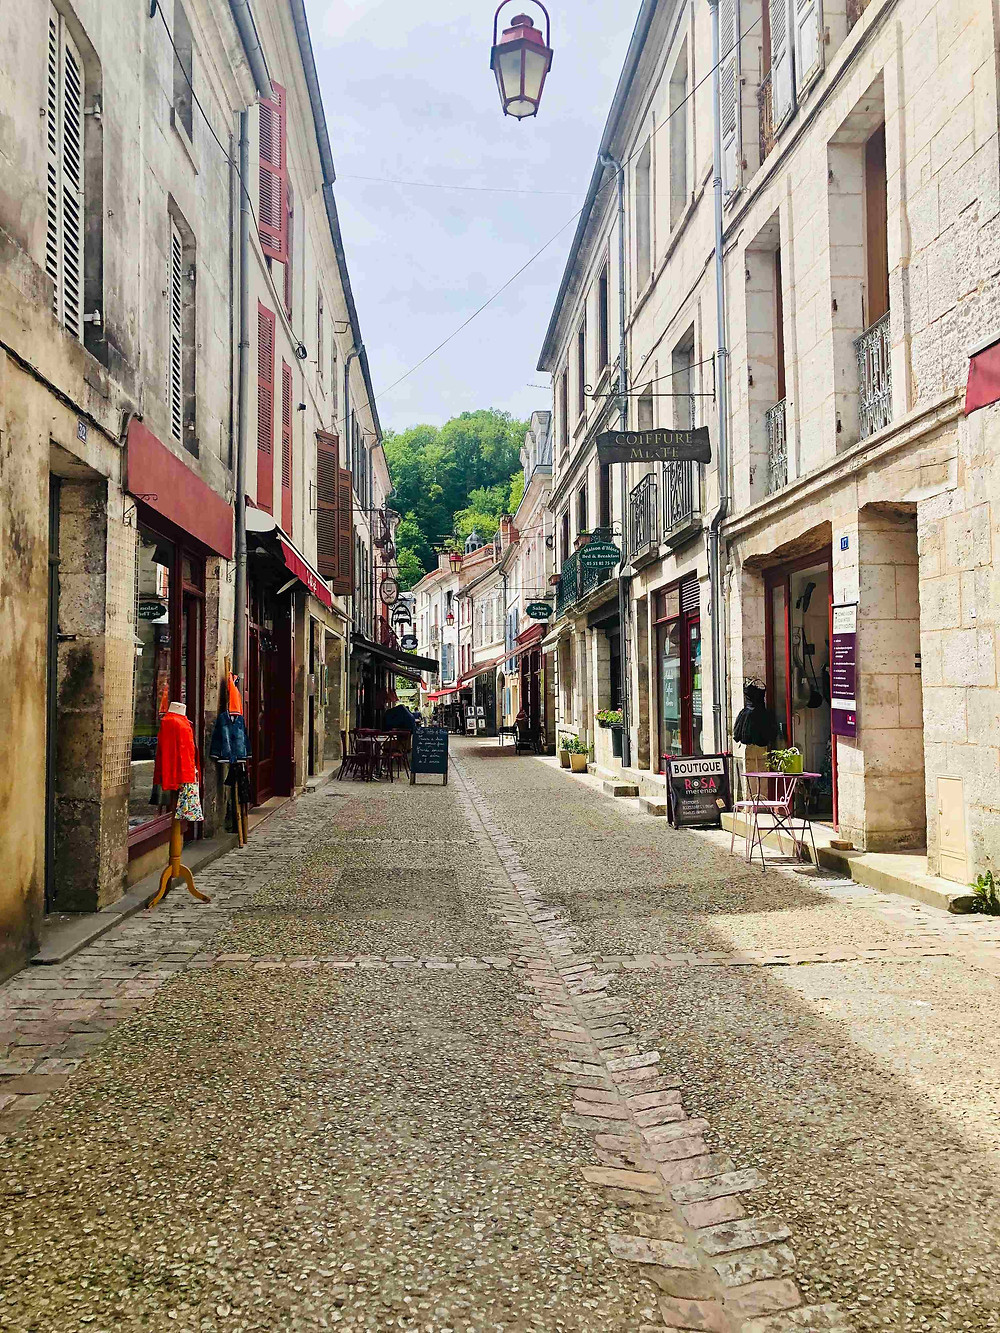 Cobbled shopping street in Brantome, France